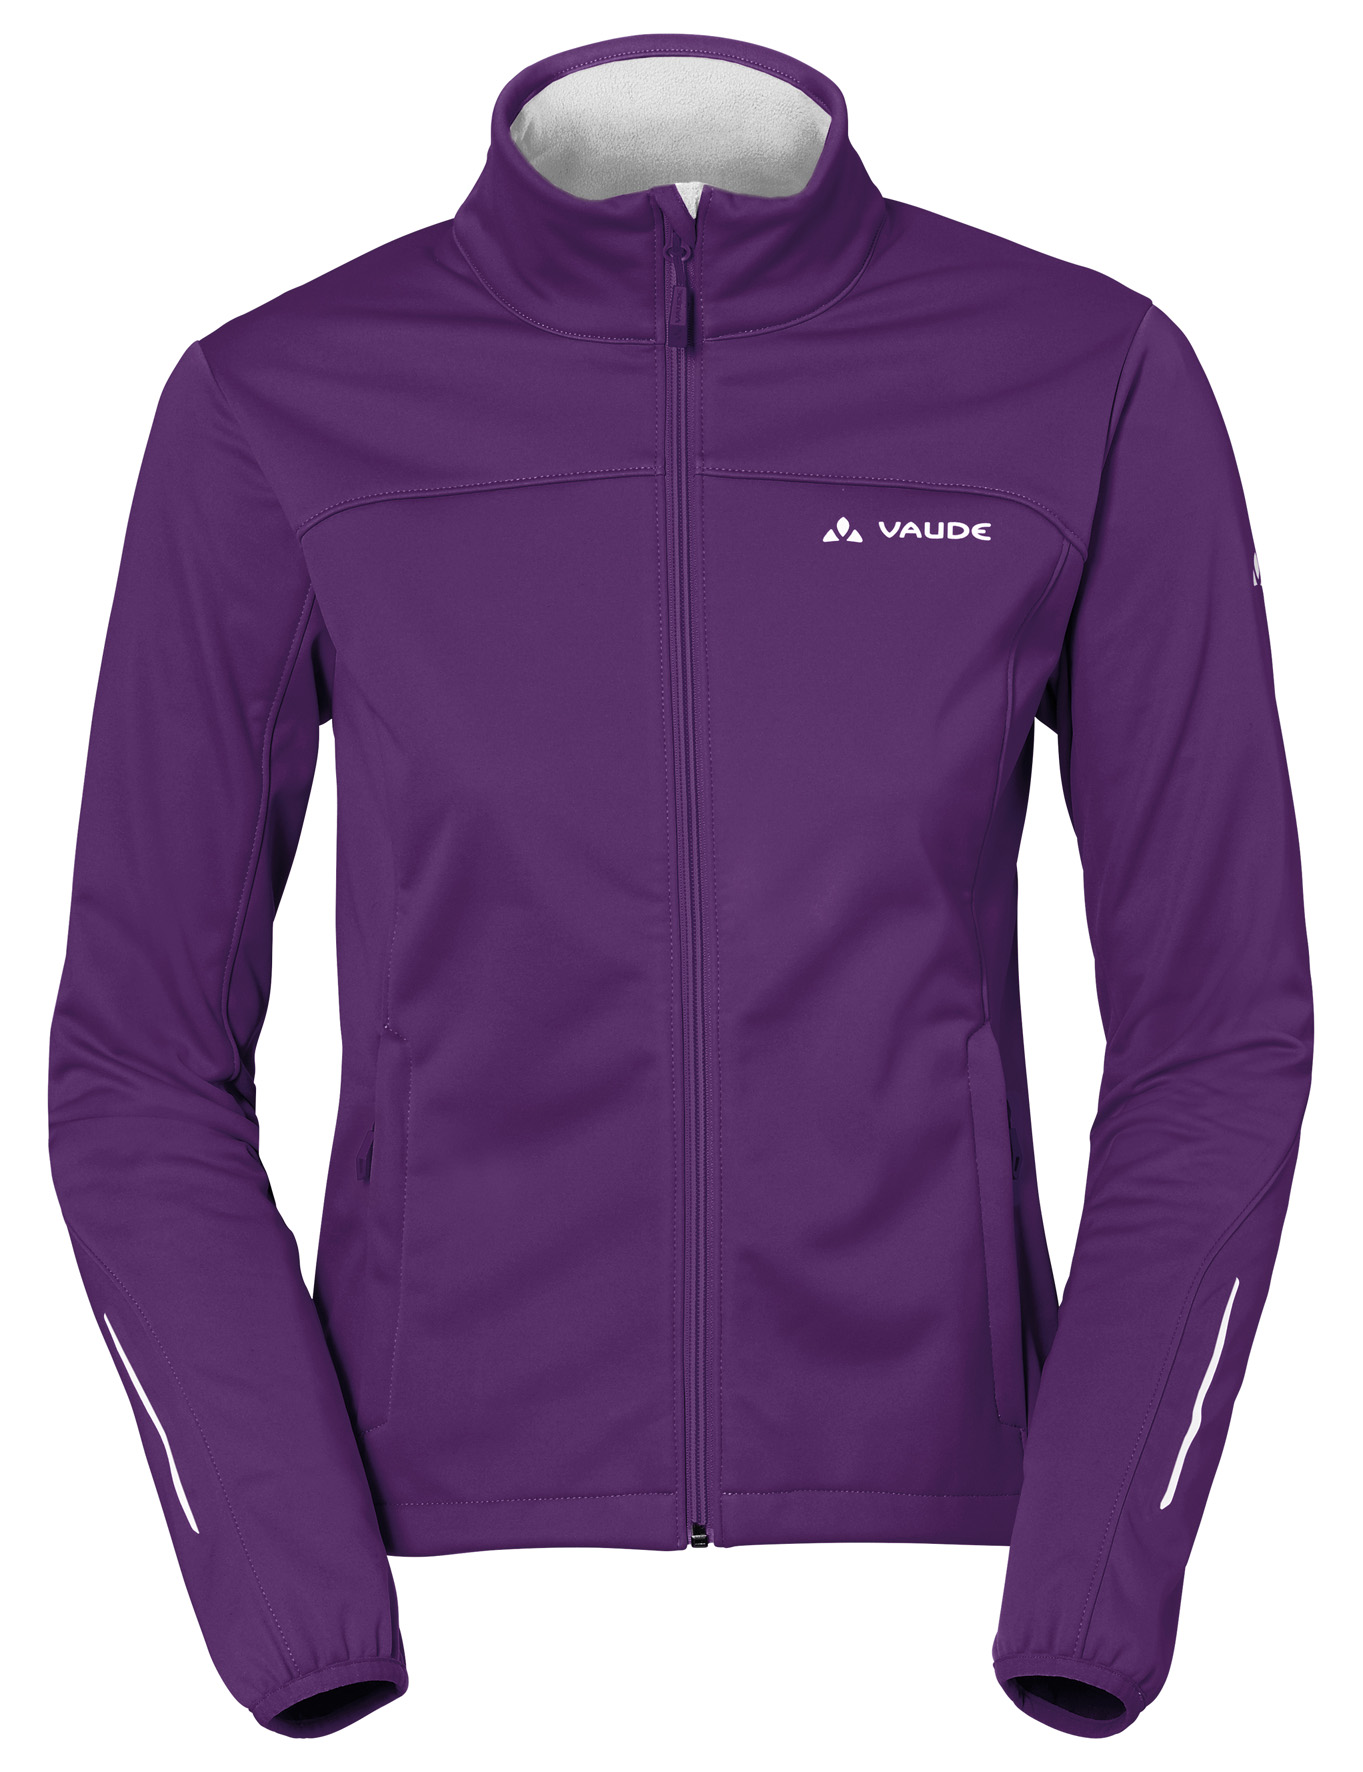 VAUDE Women´s Wintry Jacket III elderberry Größe 46 - schneider-sports